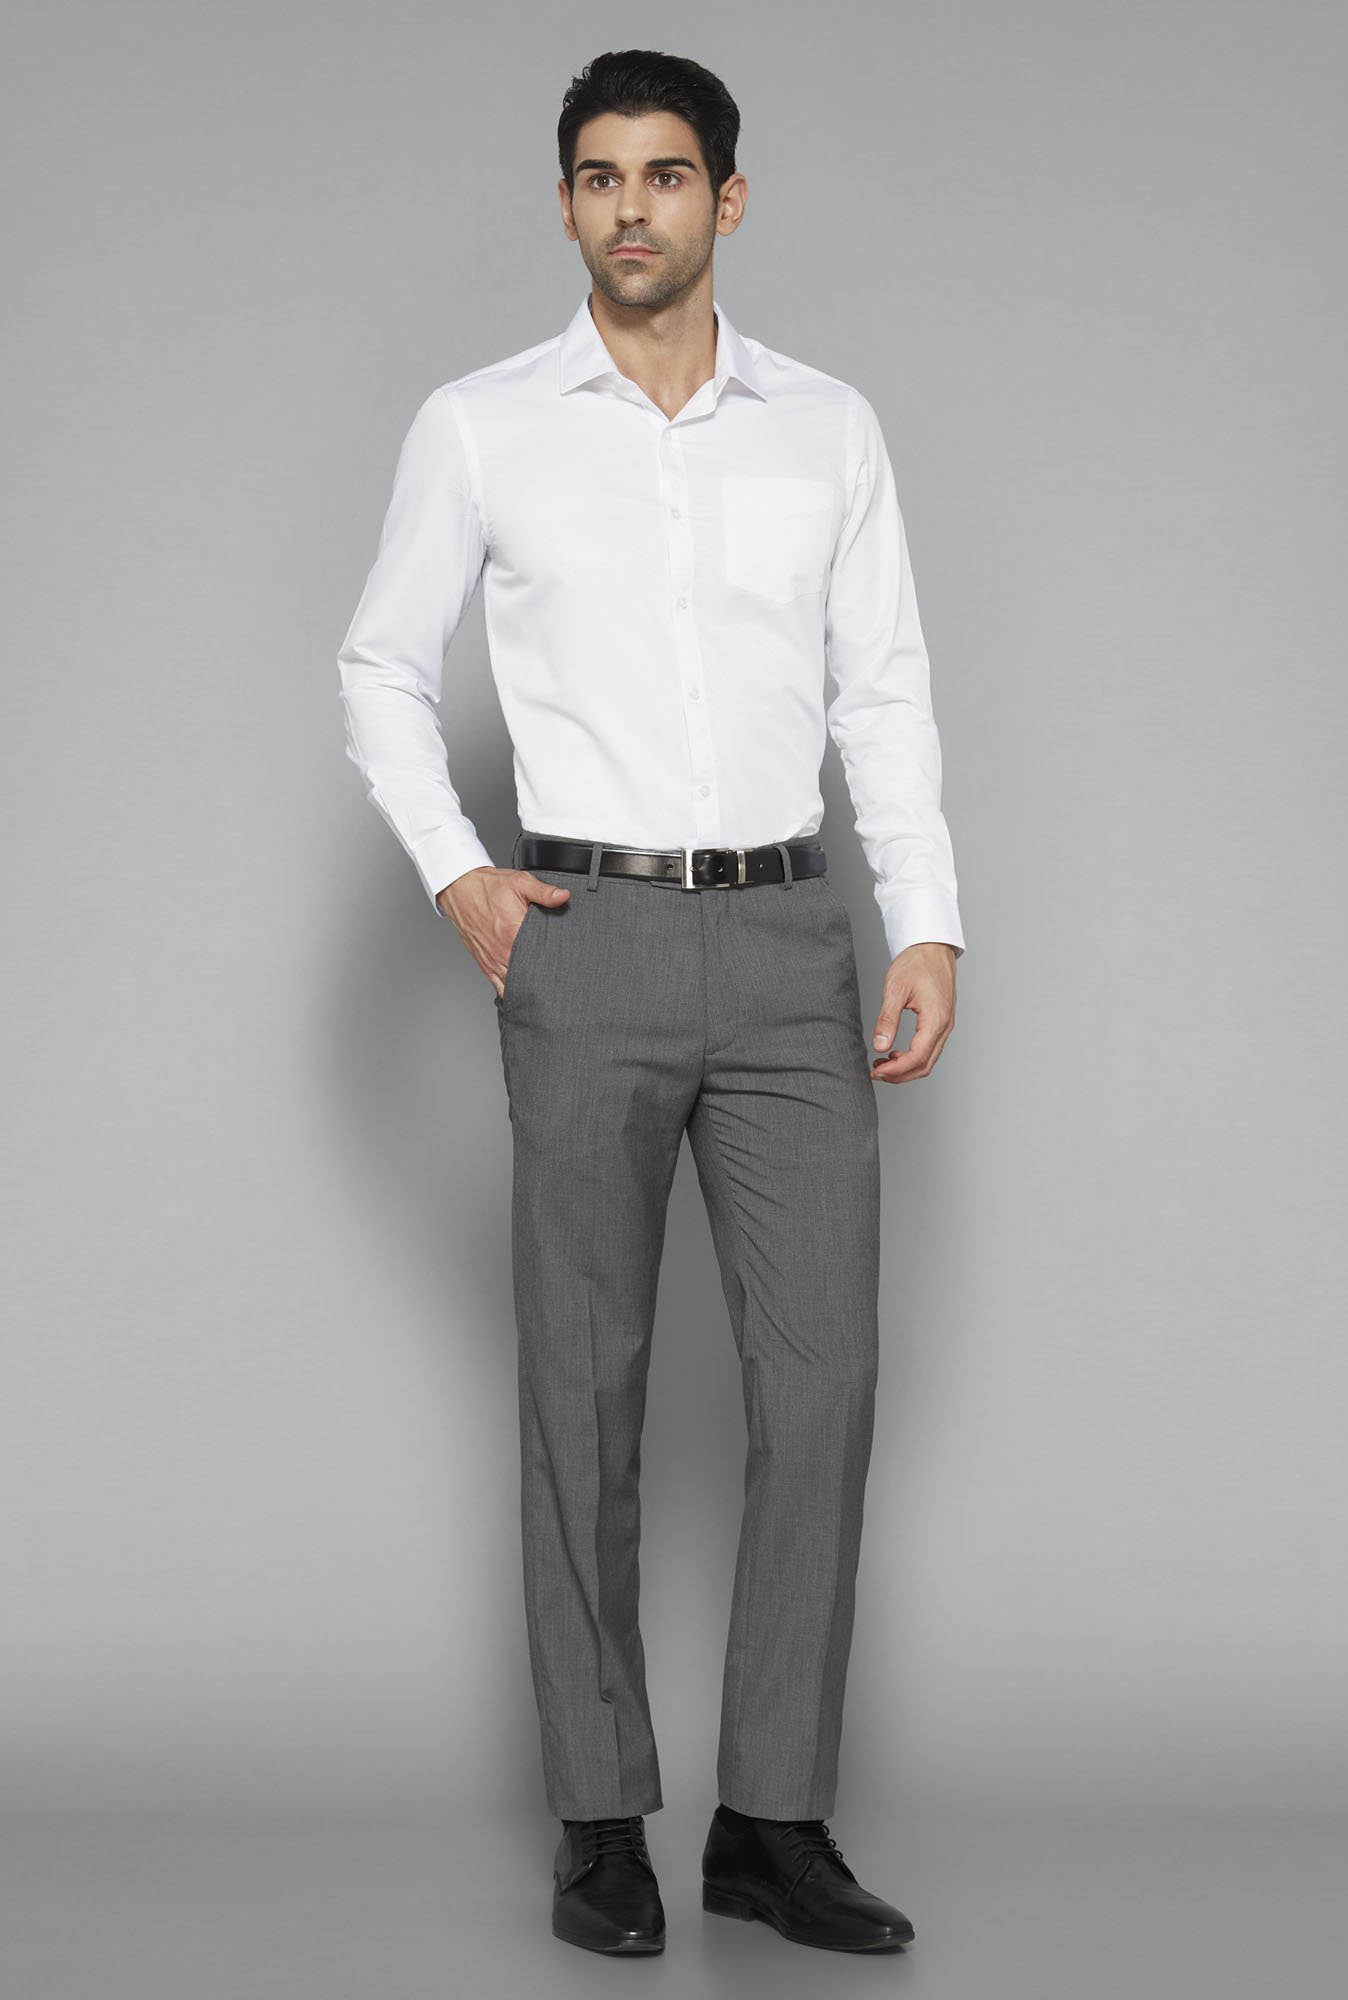 Weststreet White Solid Slim Fit Shirt